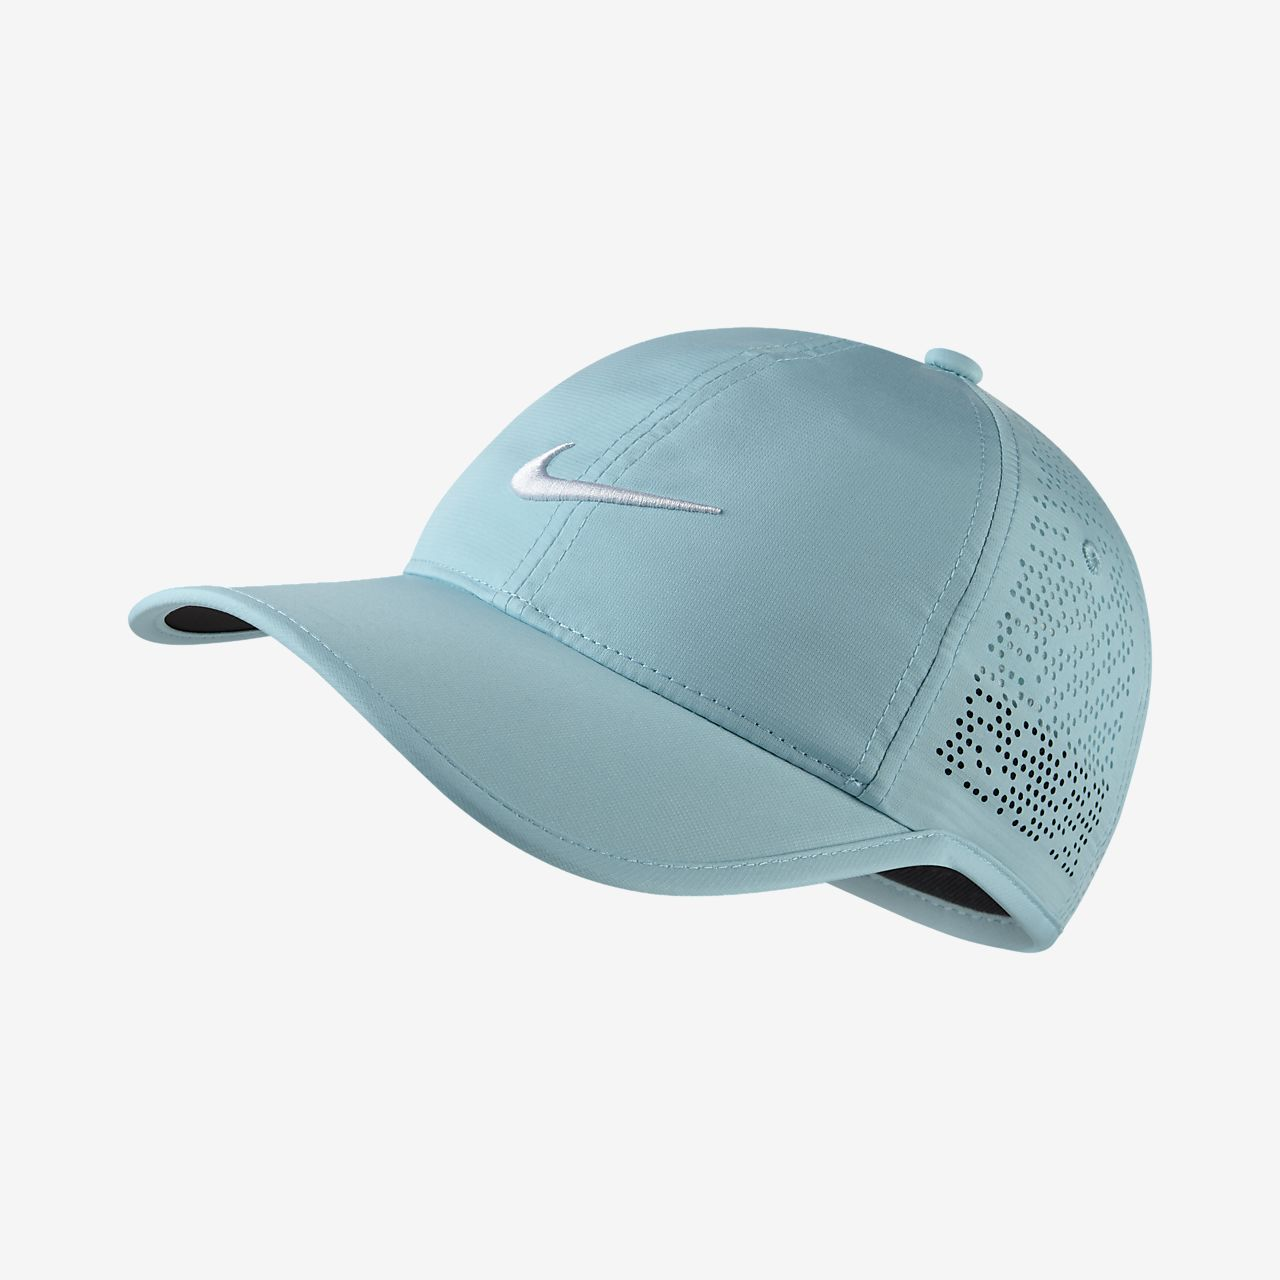 Faithful Men Ministries South Africa - Clinton s blog. Adventures of a  faithful man. nike head cap 55bec3016